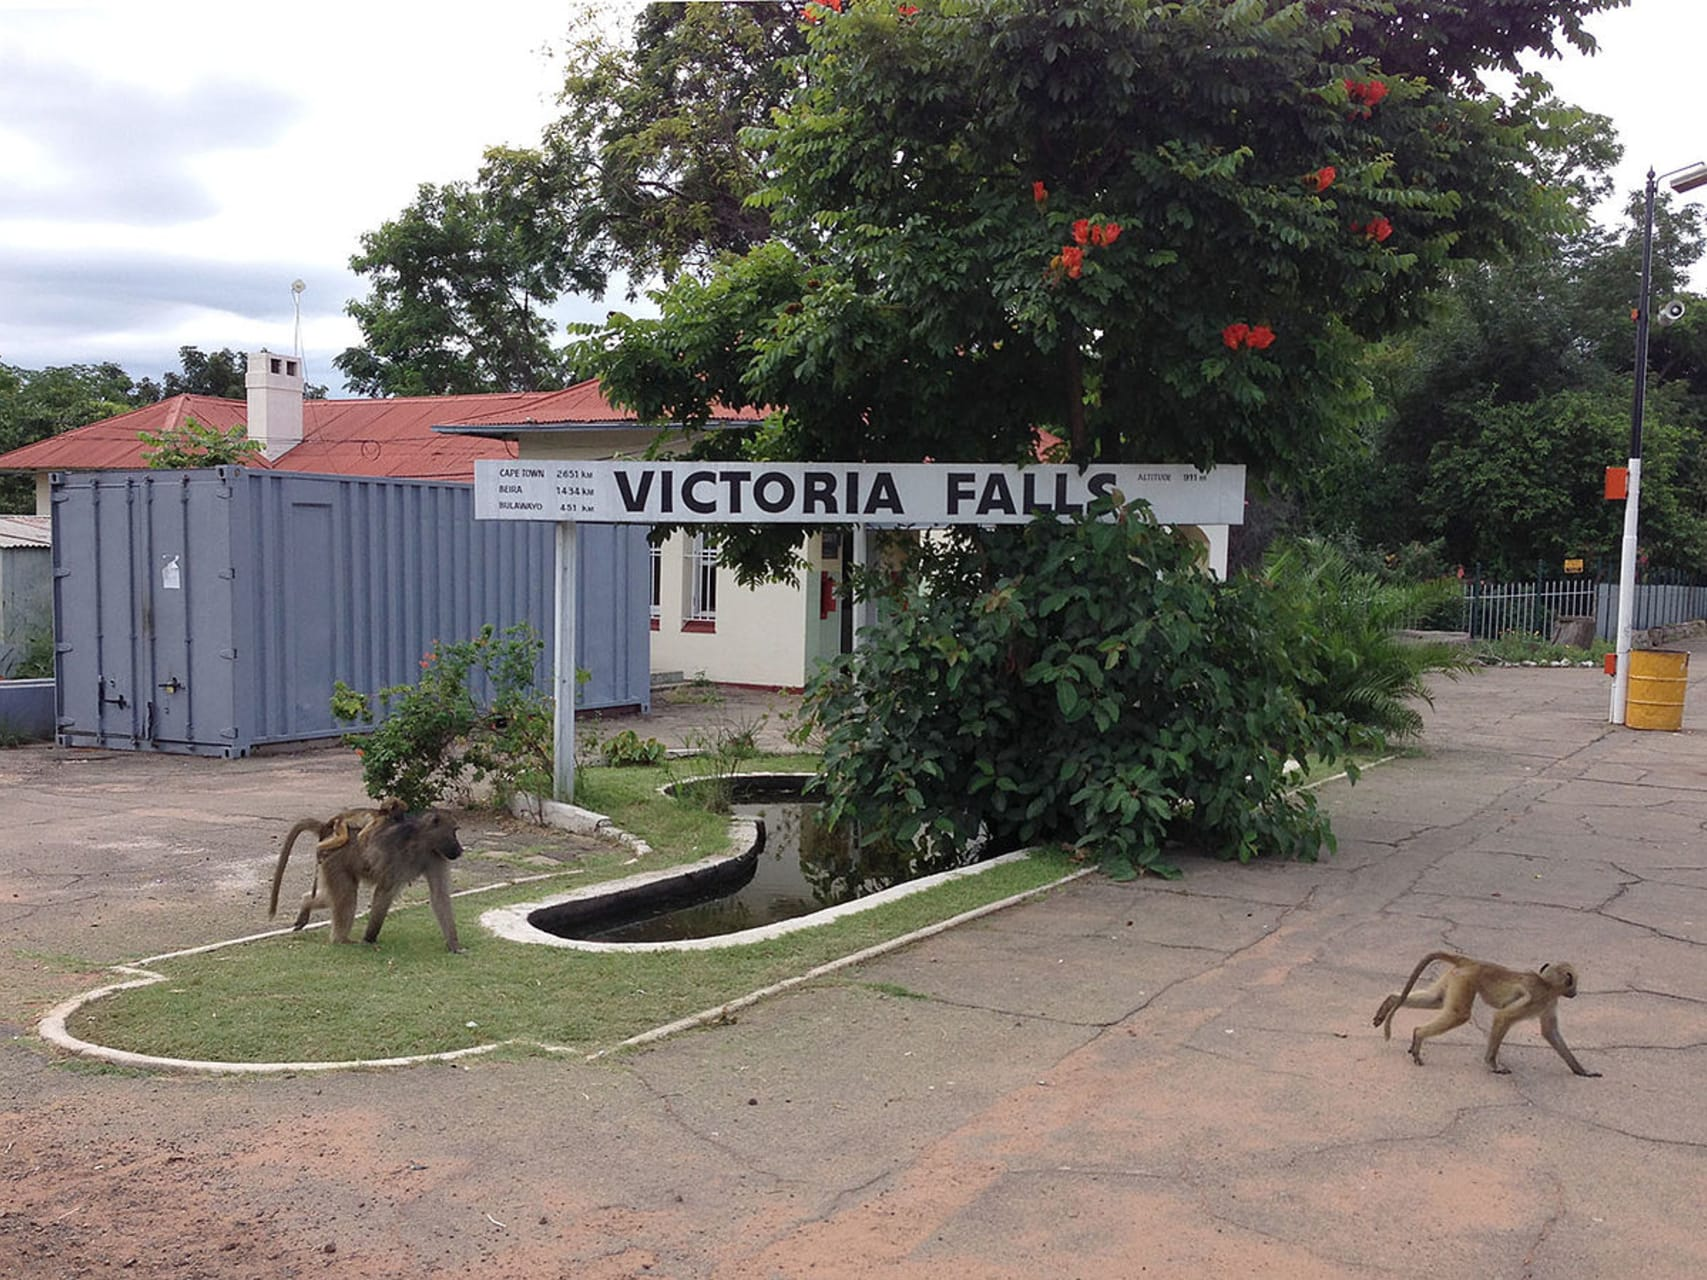 Victoria Falls - Wild animals in a City full of humans!